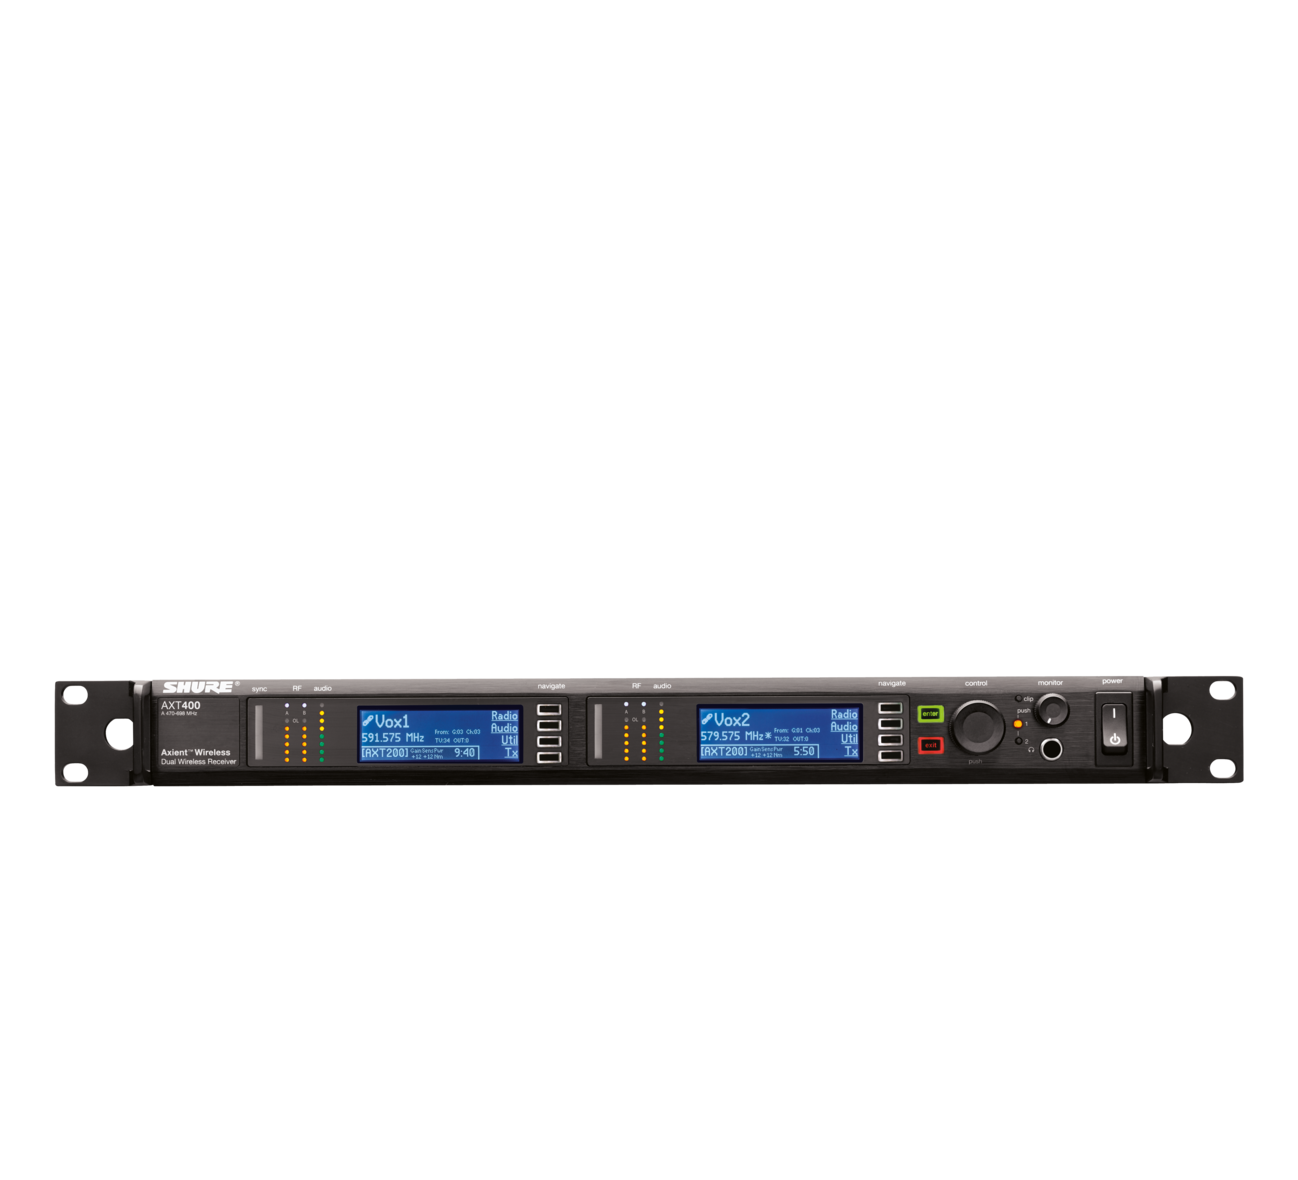 AXT400 - Axient Dual Channel Receiver